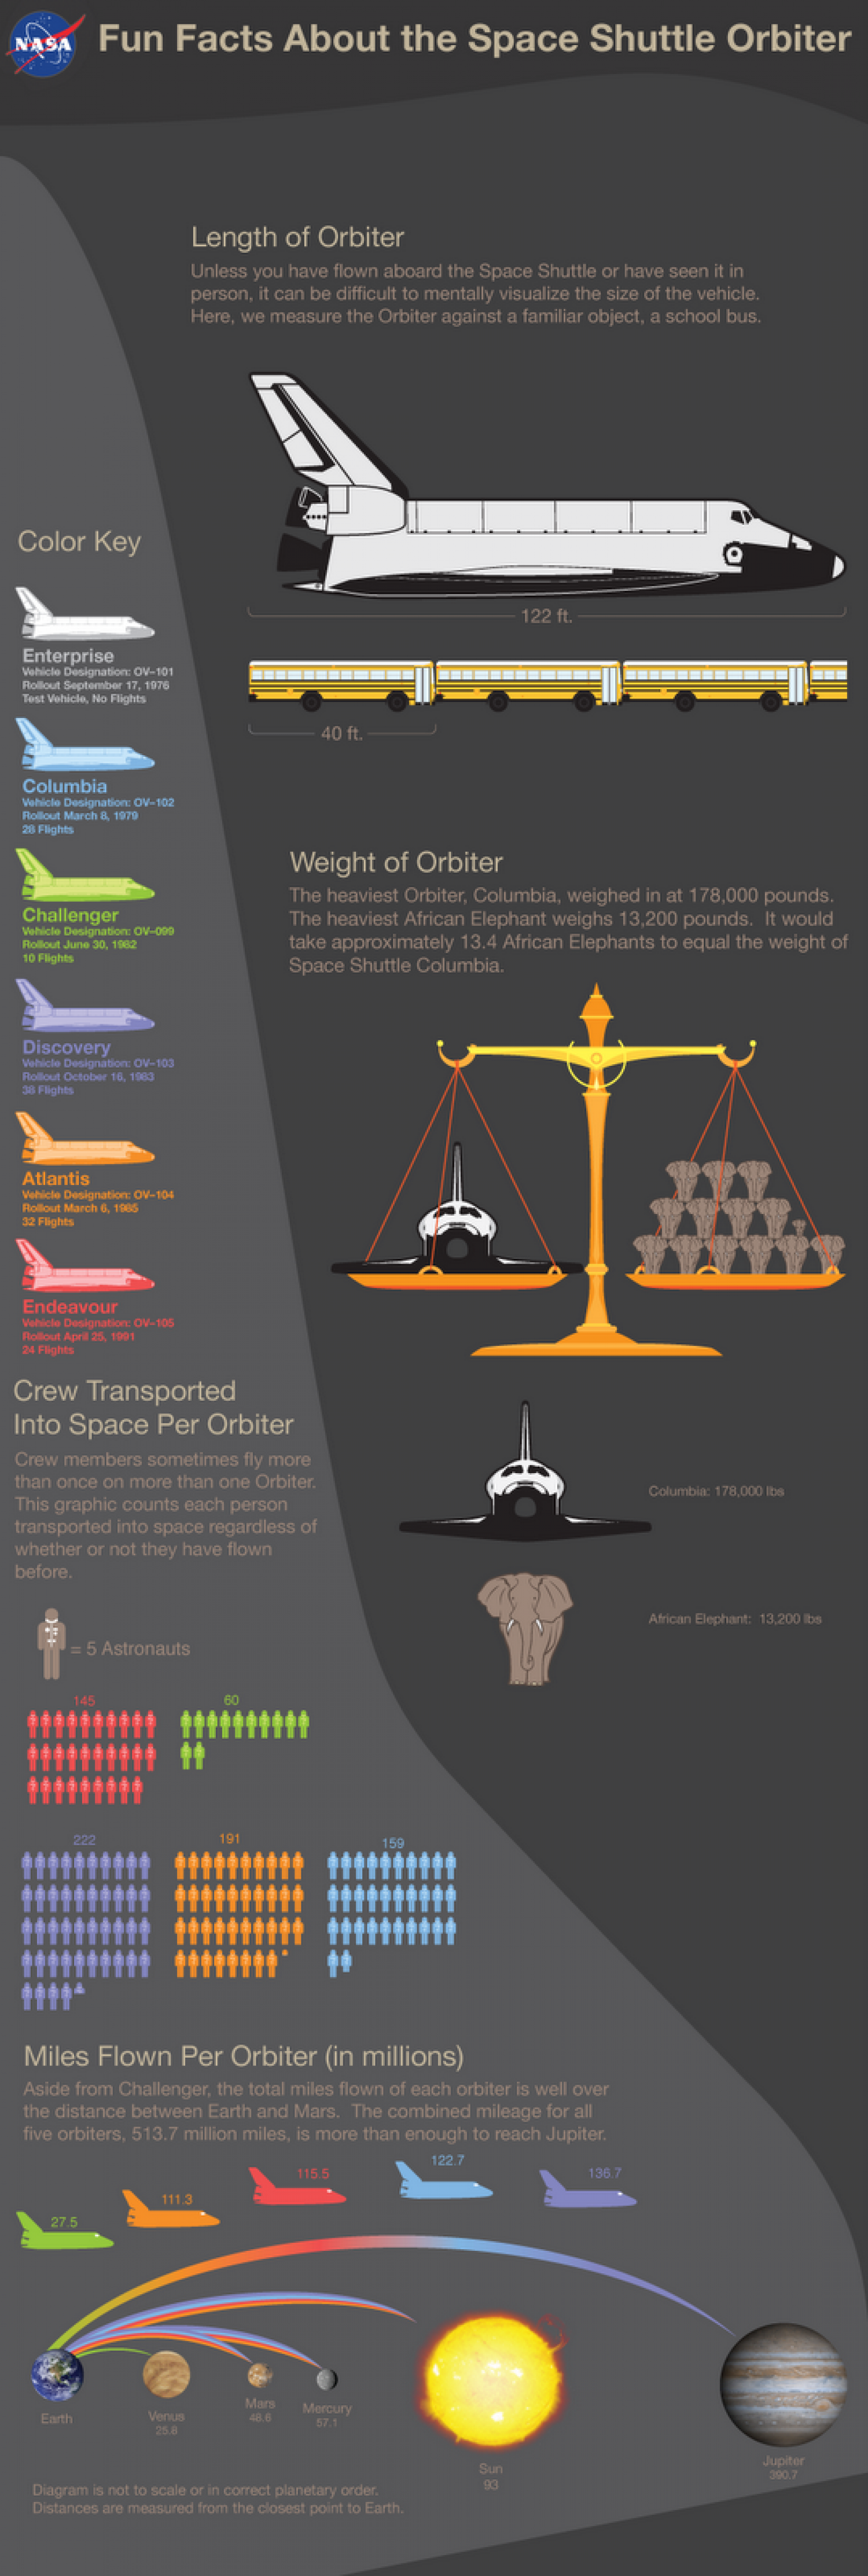 Fun Facts about the Space Shuttle Orbiter Infographic